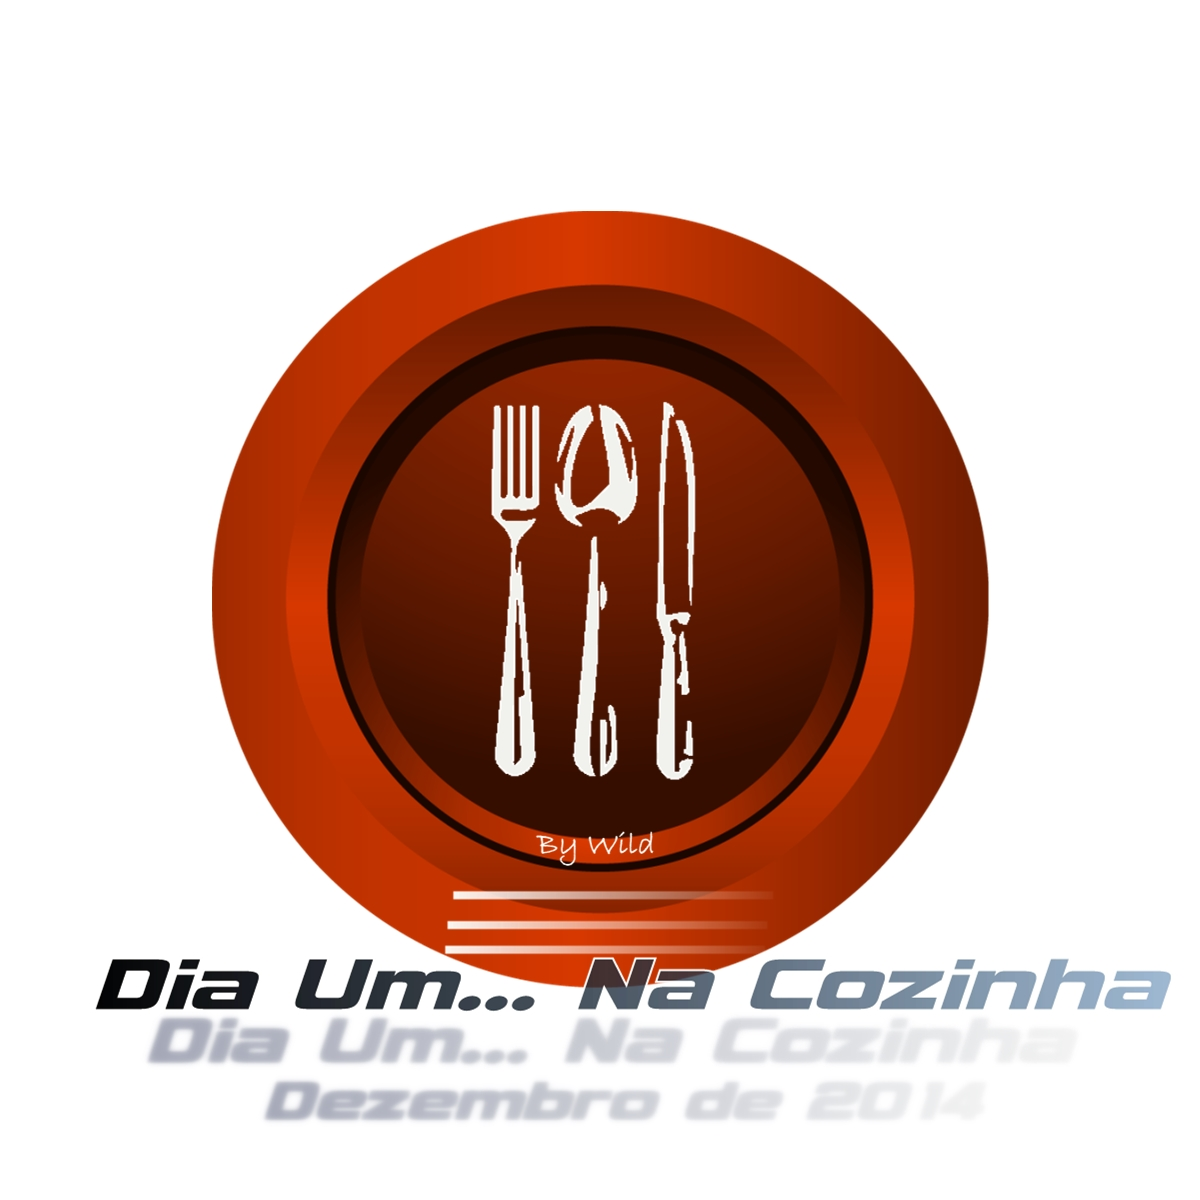 https://www.facebook.com/groups/diaumnacozinha/